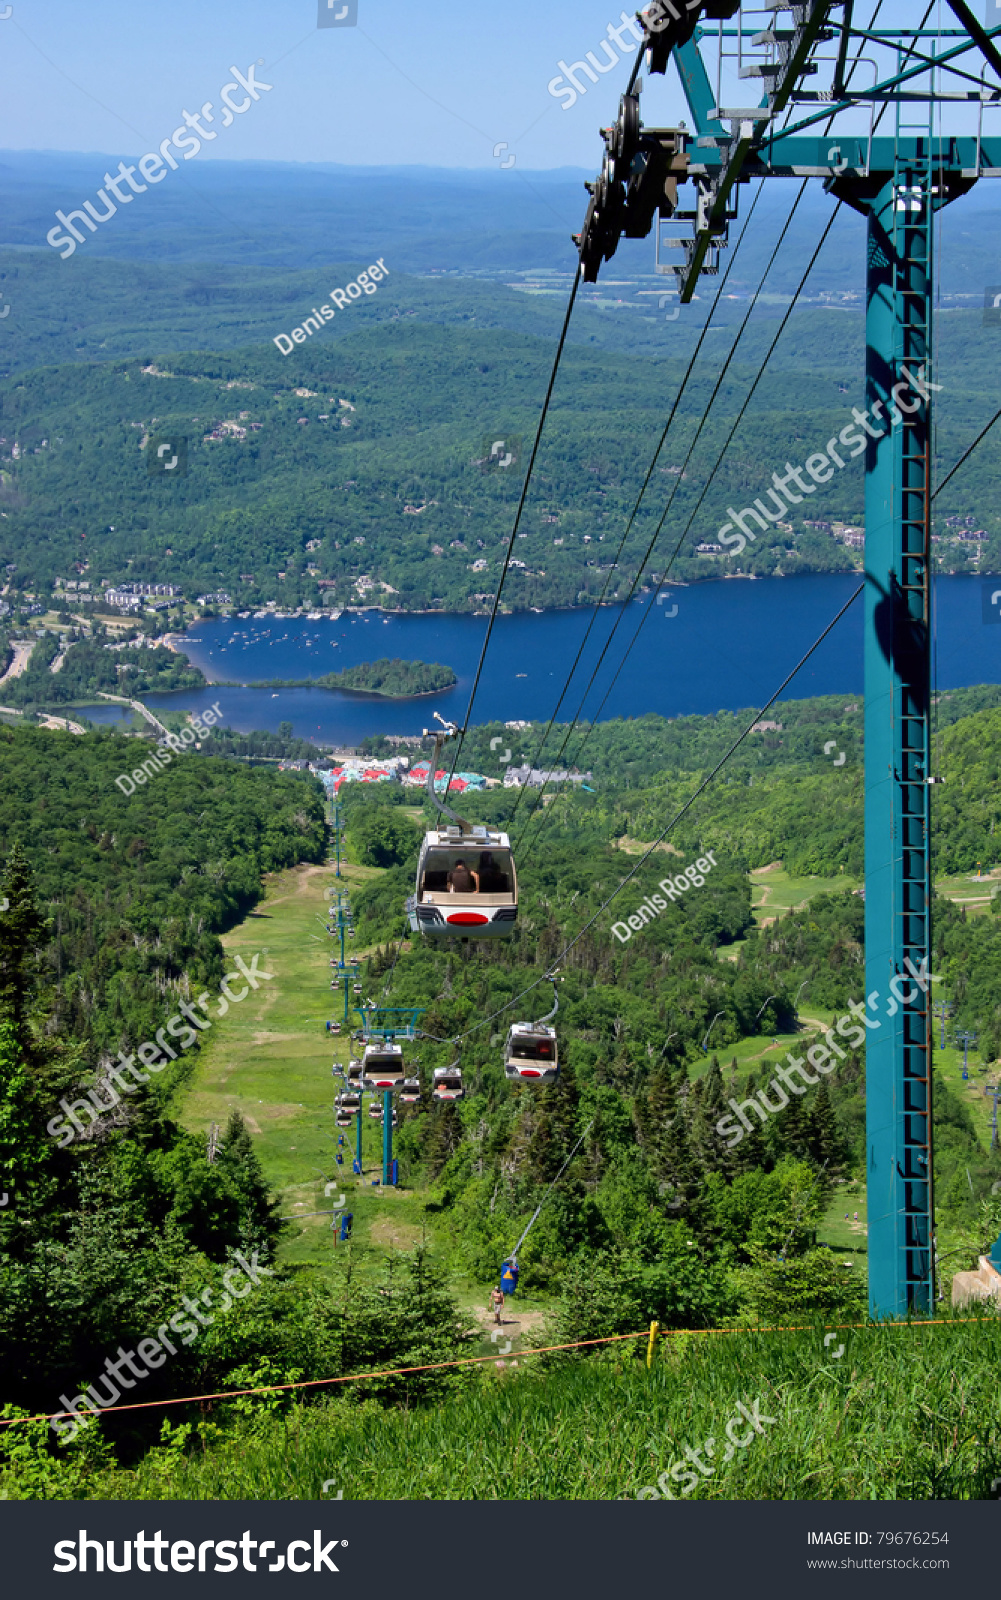 Aeriial View Peoples Using Chairlift Ascend Stock Photo